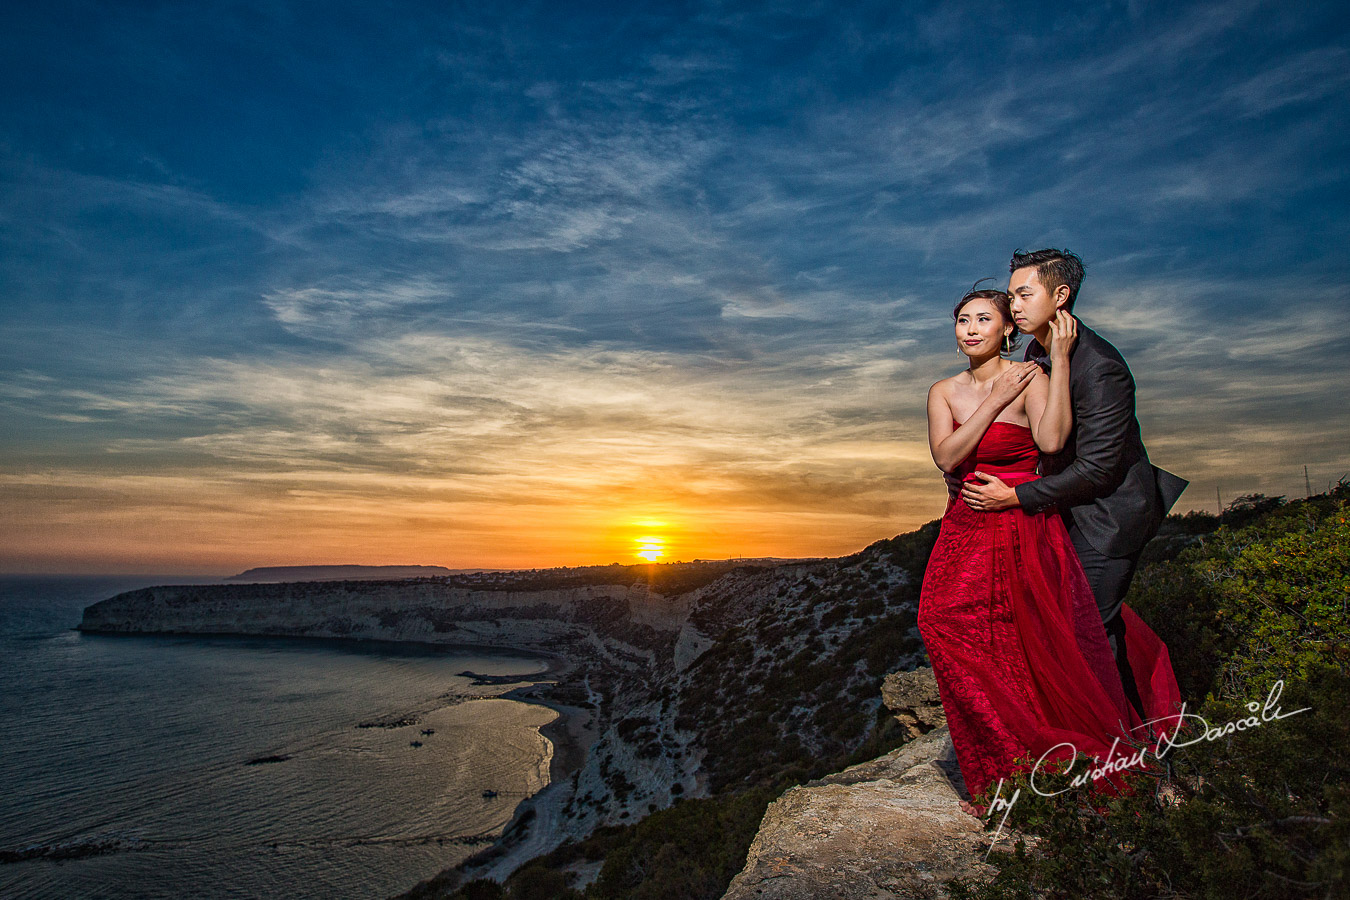 Pre-wedding Photography in Cyprus - 19